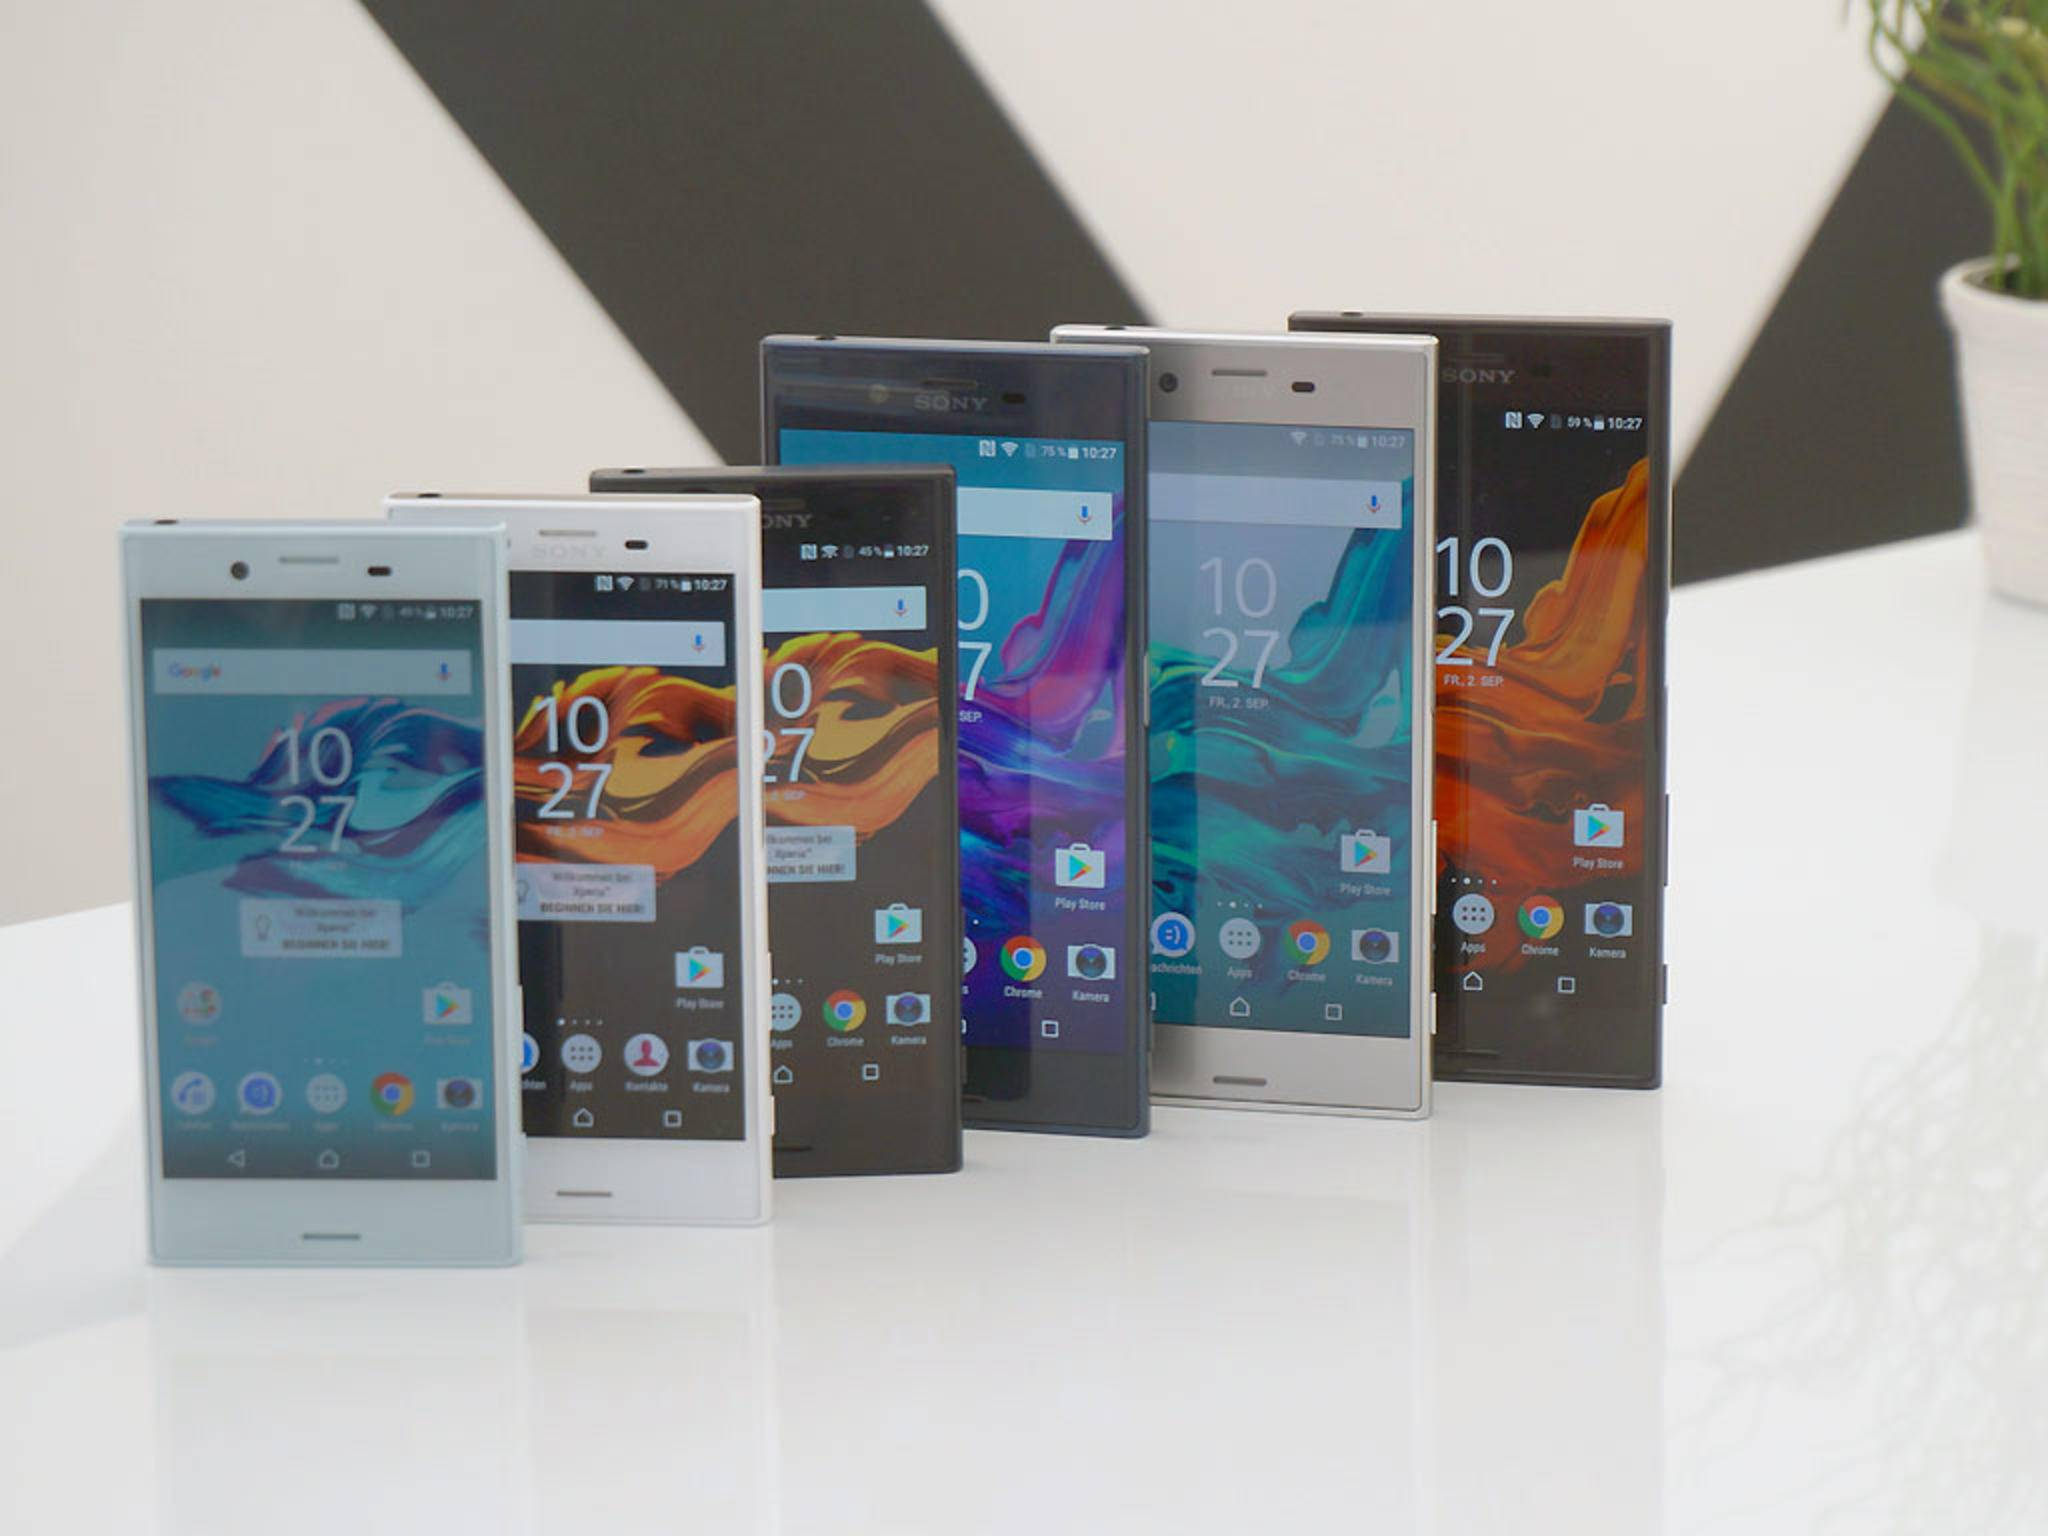 Sony Xperia: Android 7 Nougat rollt an.